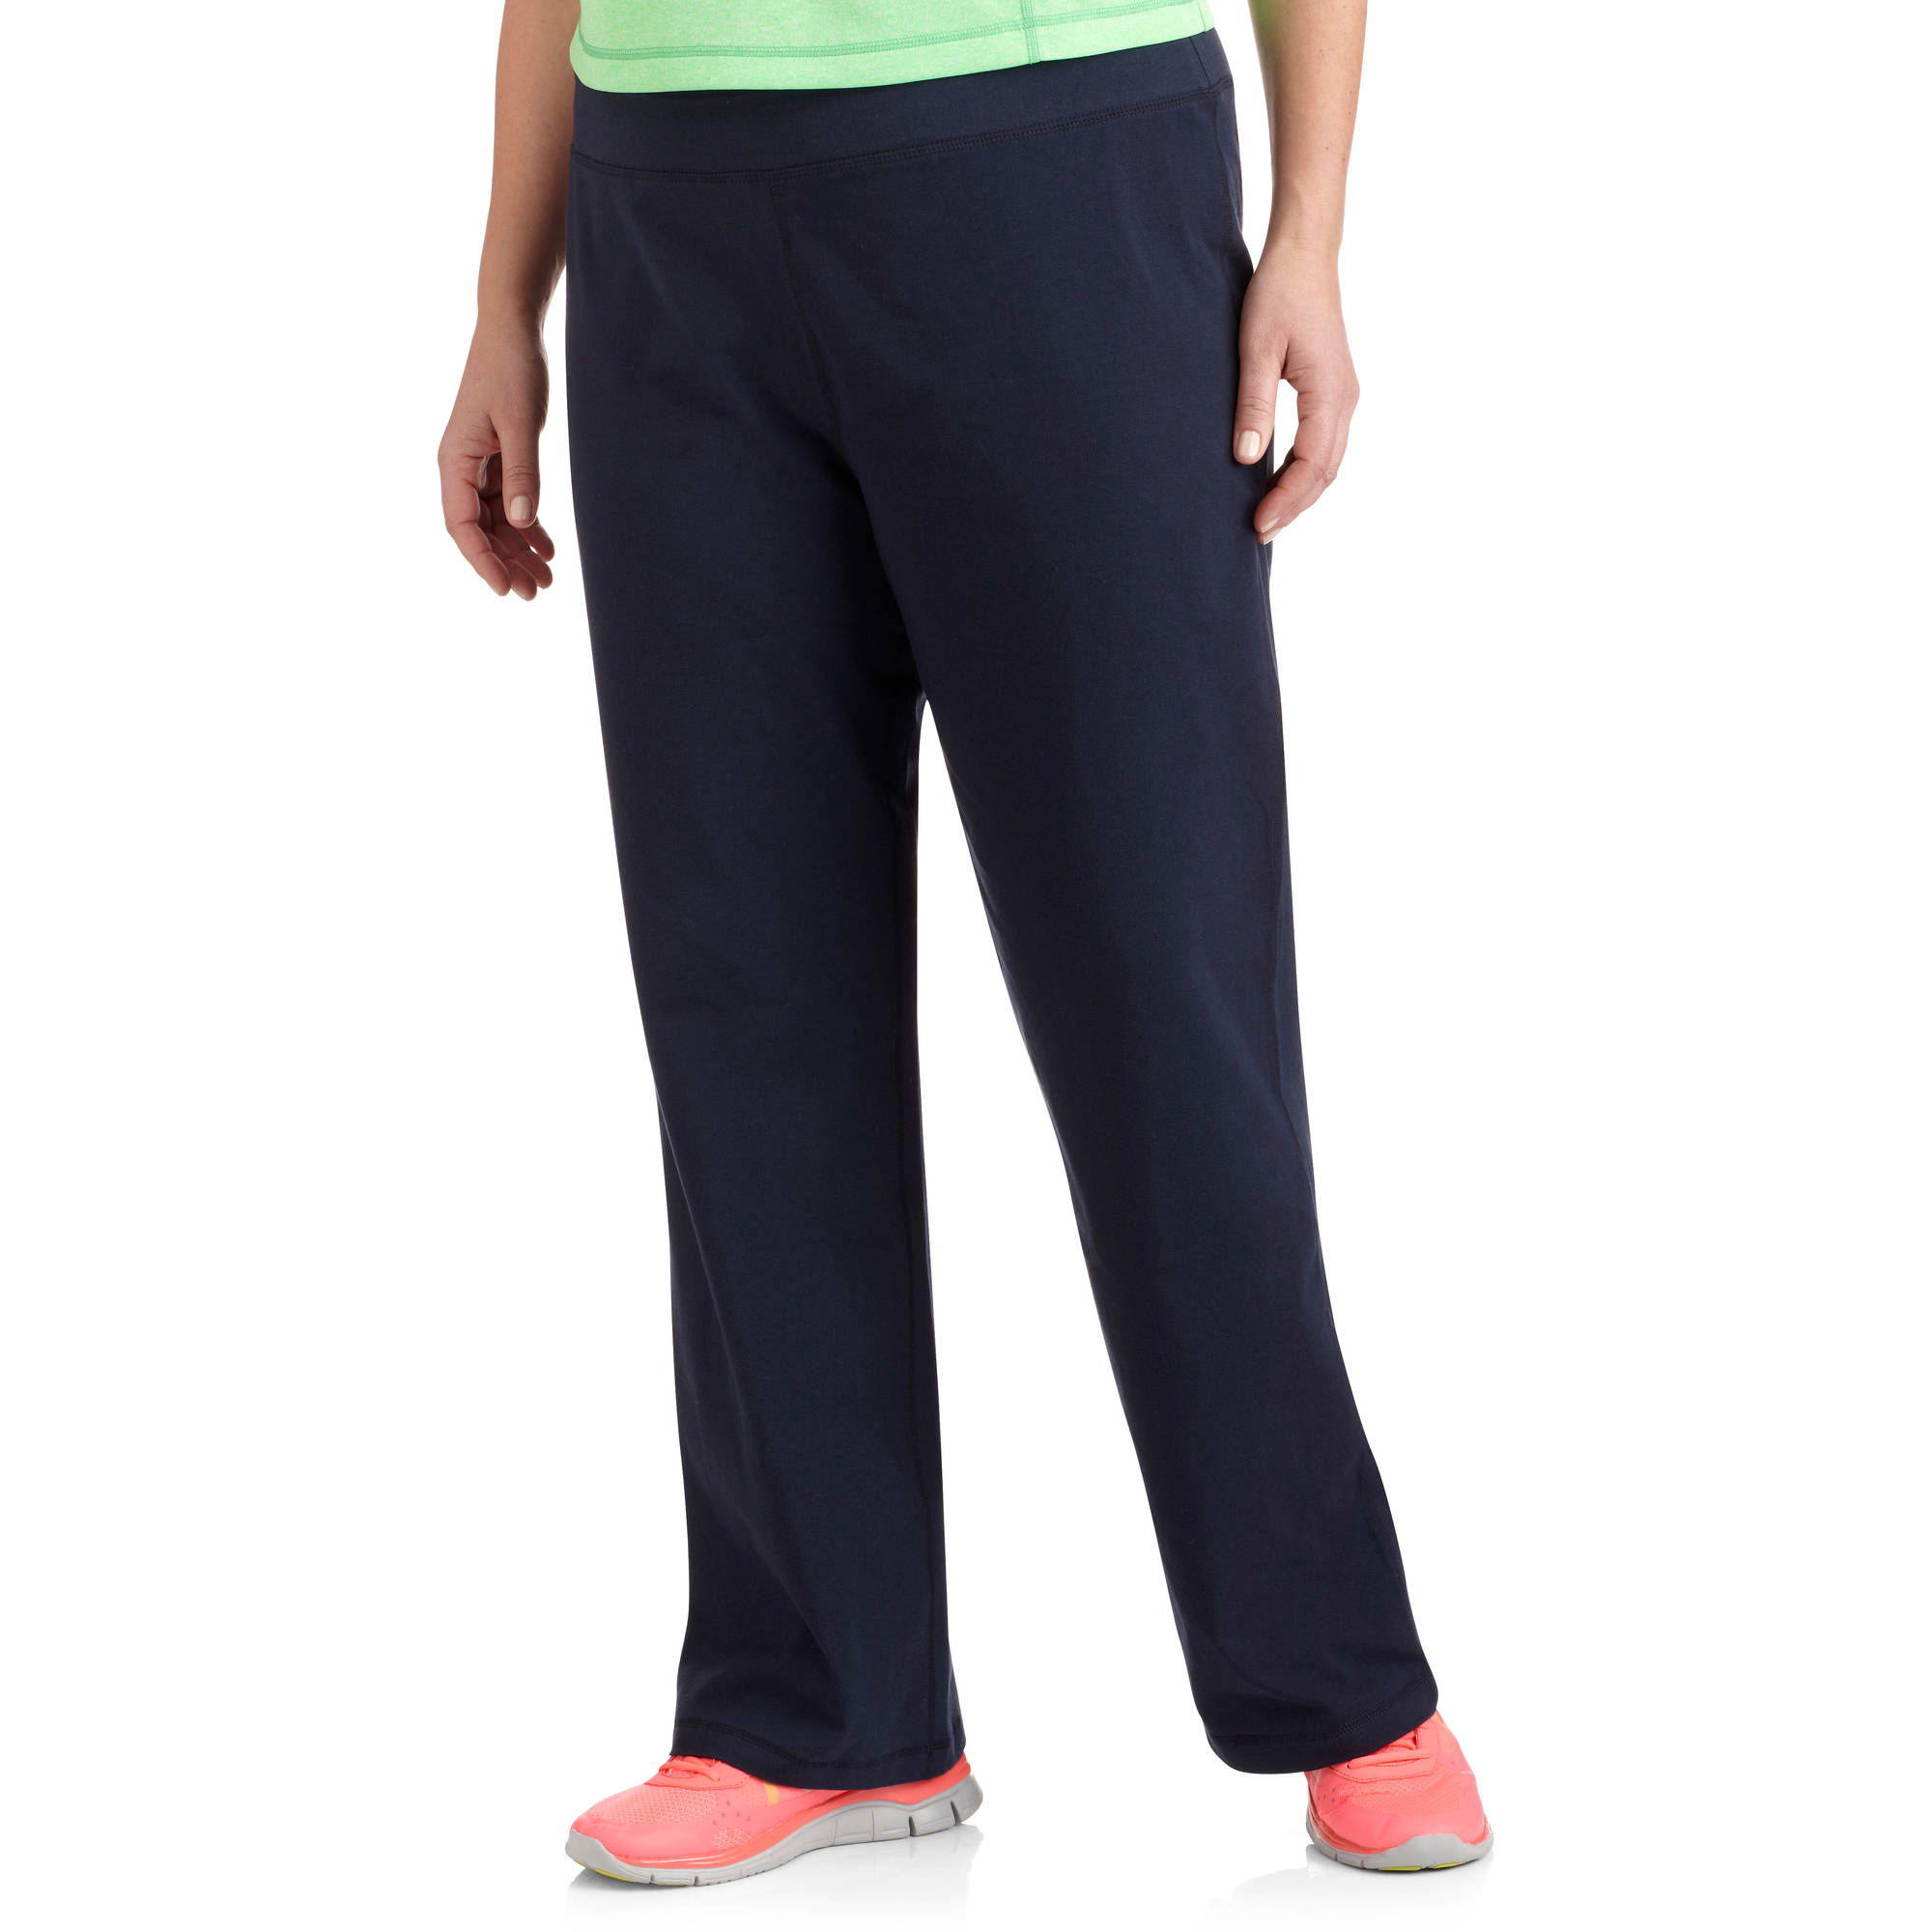 Danskin Now Women's Plus Size Dri More Core Bootcut Workout Pants